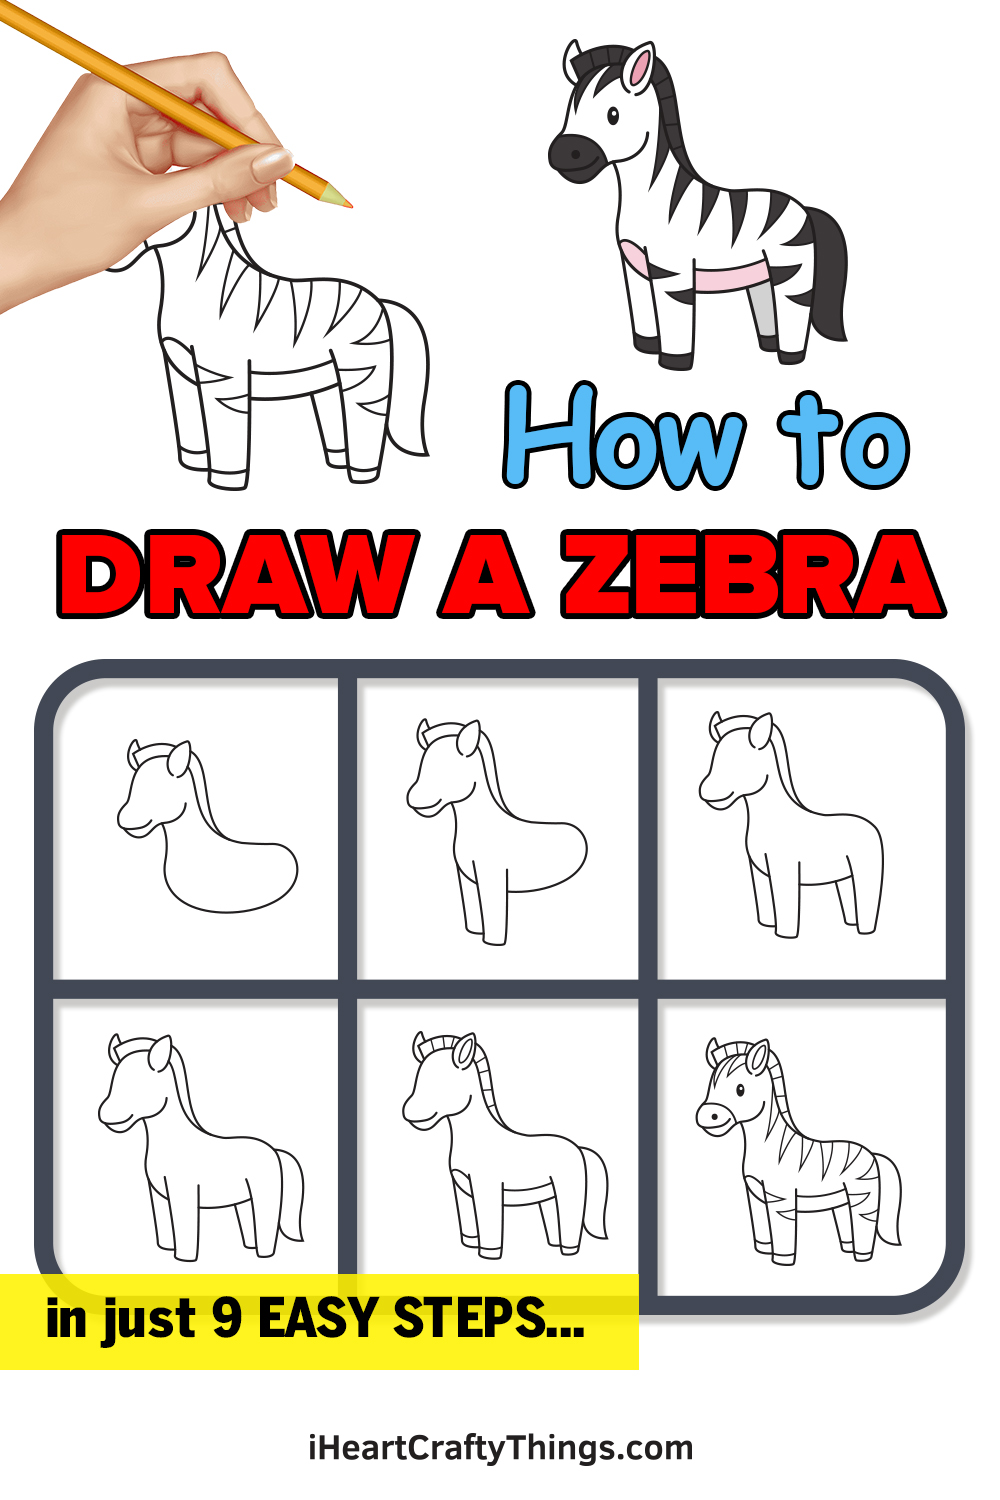 how to draw a zebra in 9 easy steps